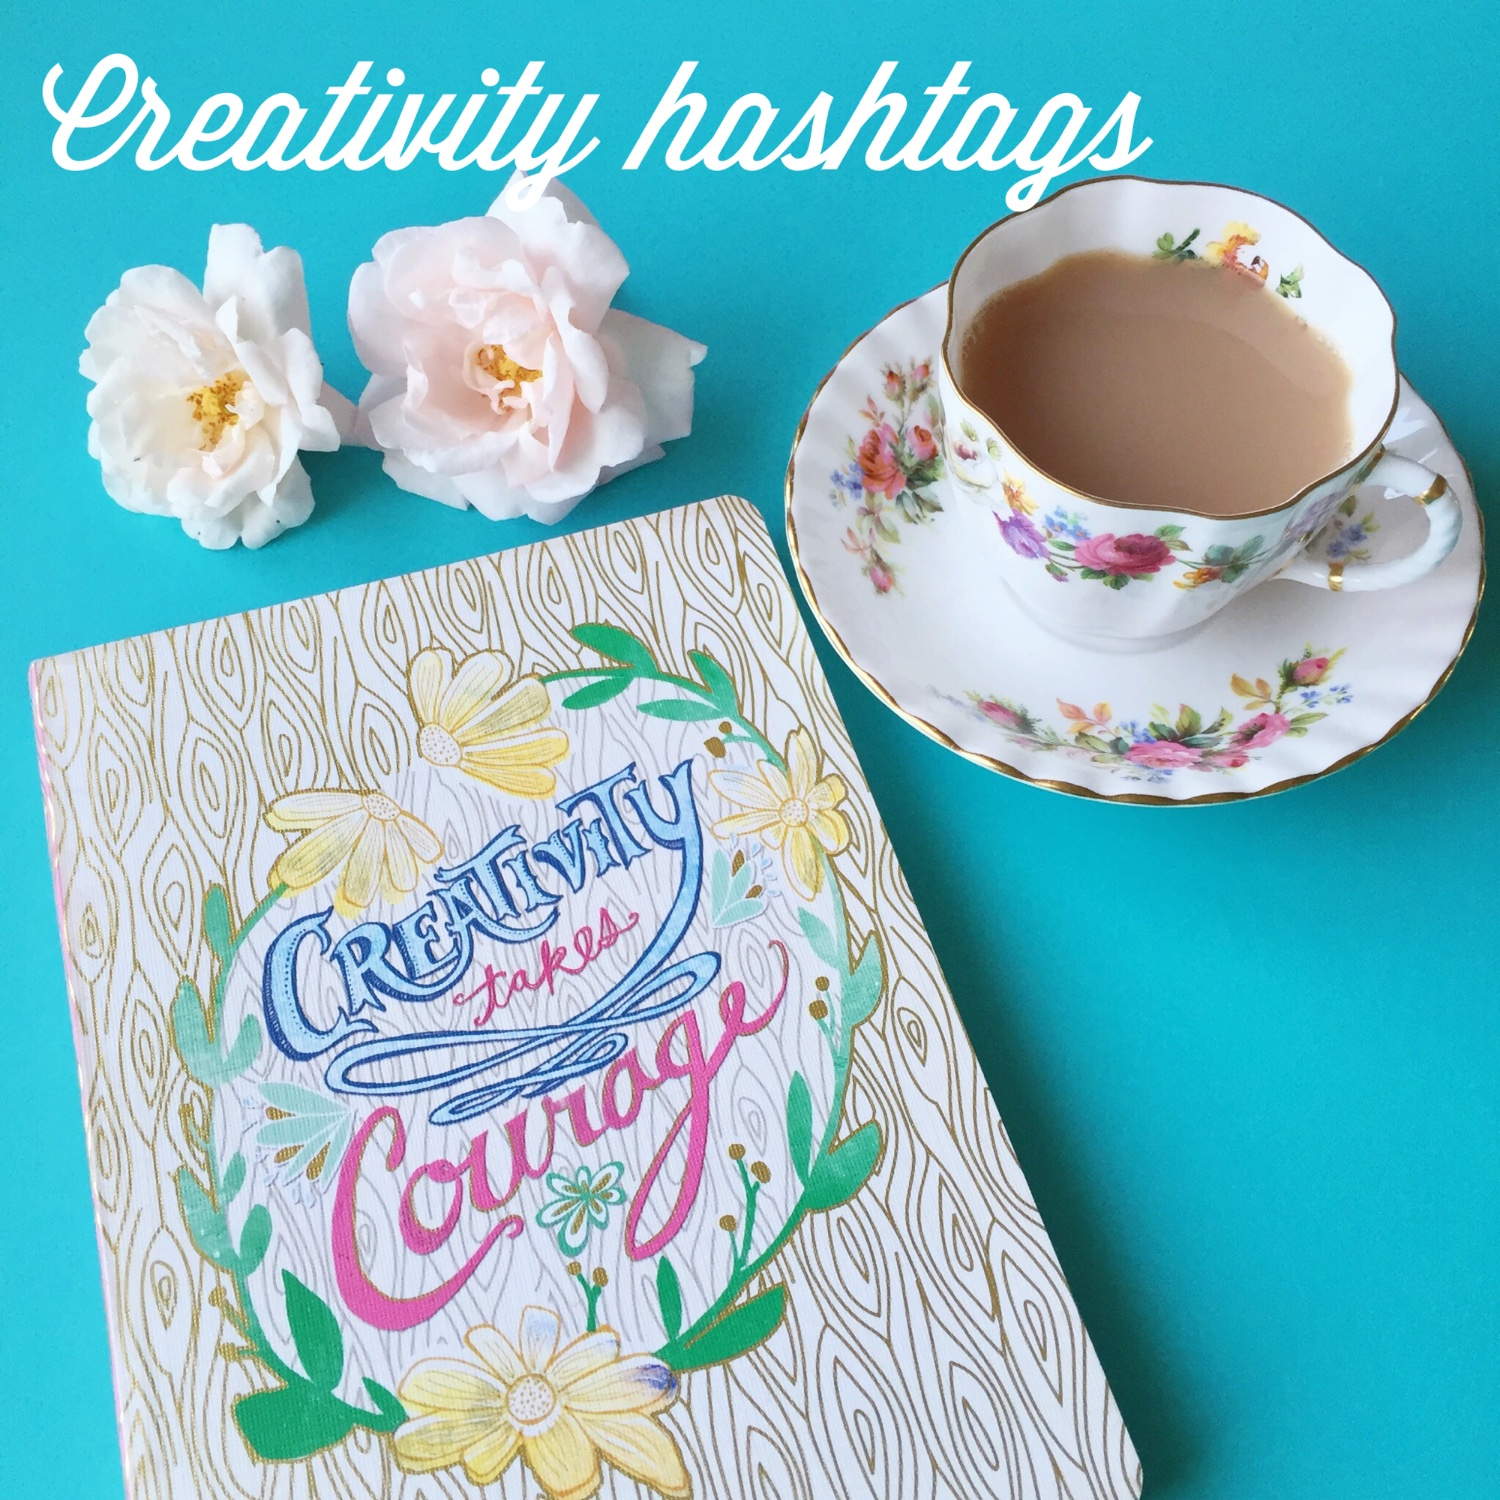 Creativity hashtags | Hello! Hooray!